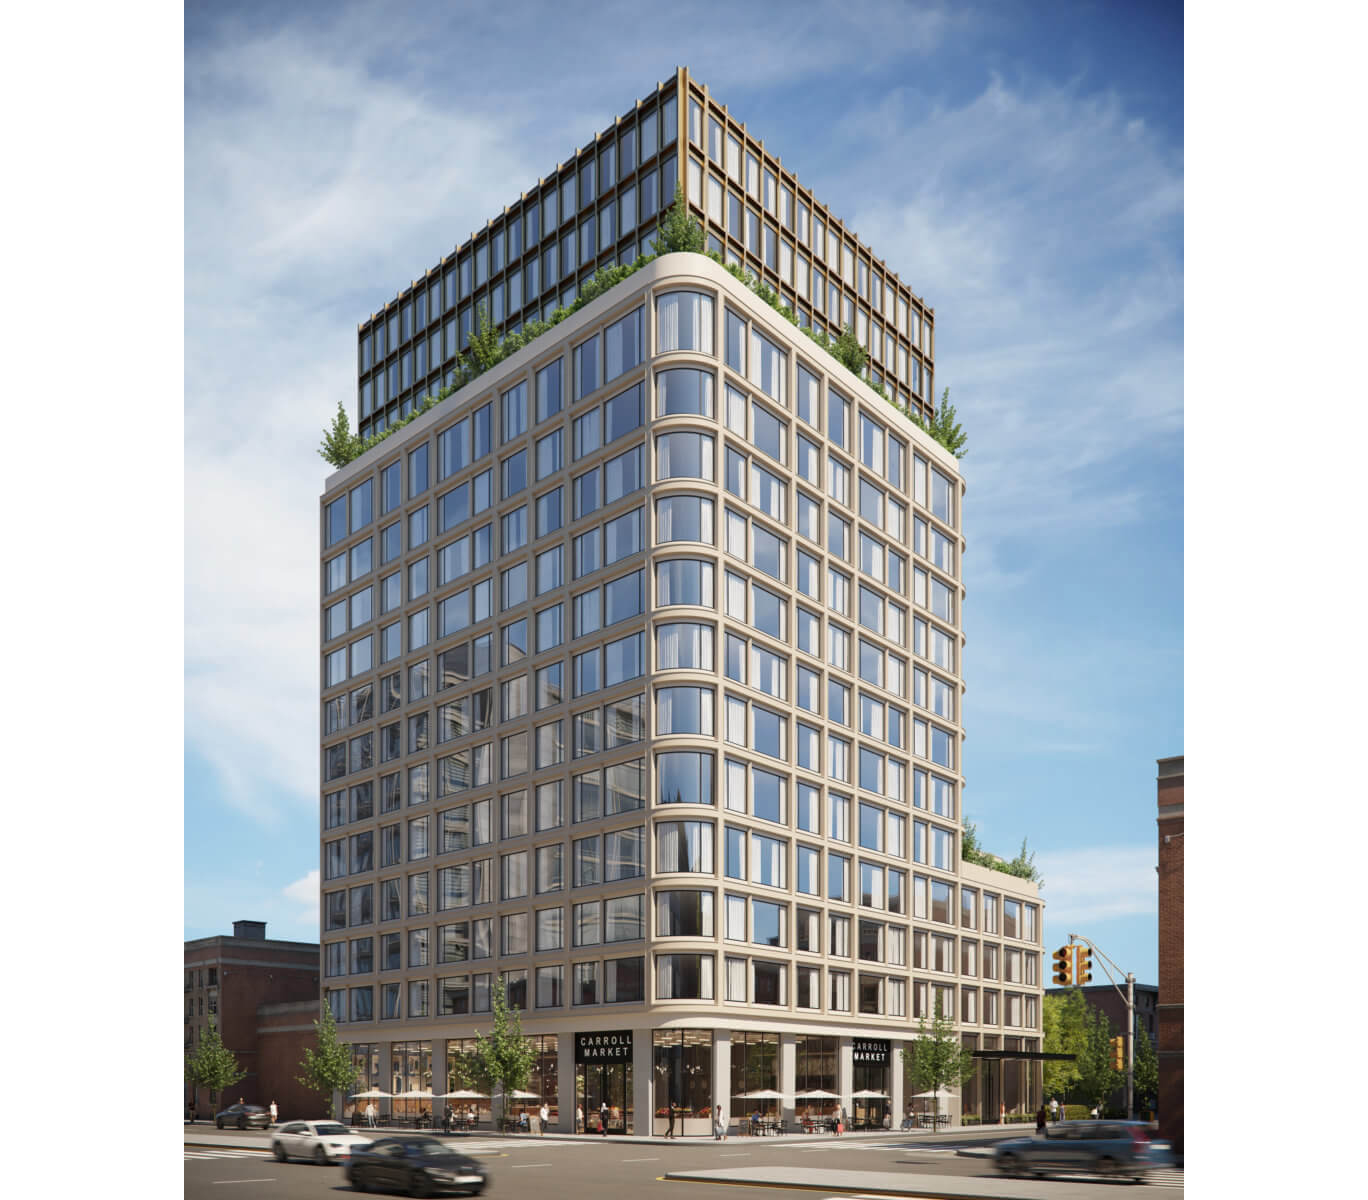 rendering of proposed buidling at 272 4th avenue